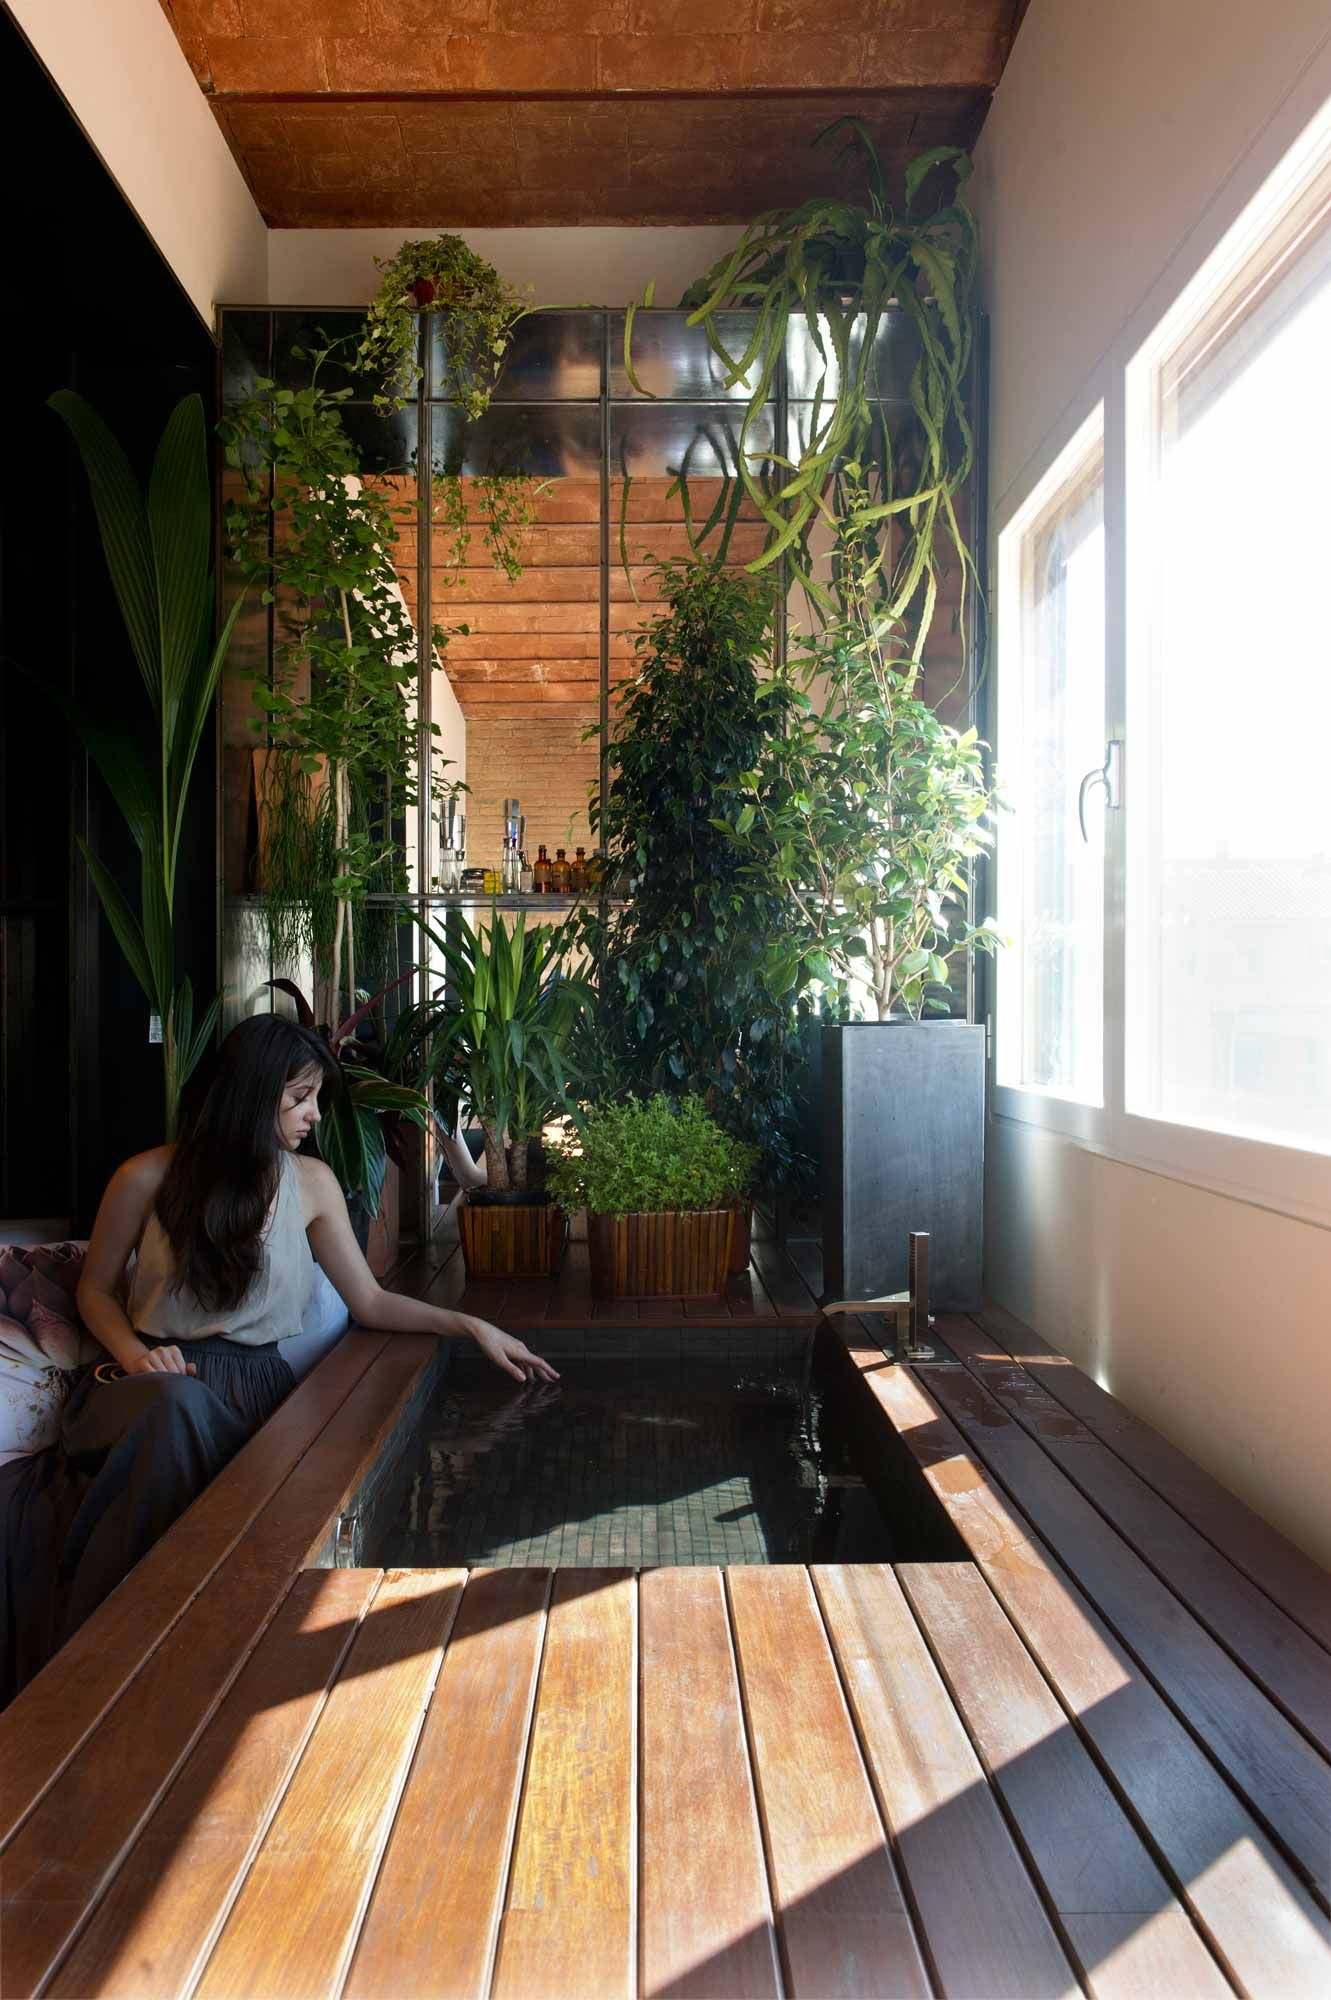 Plants are a visual barrier to the living space seen through the alcove window.